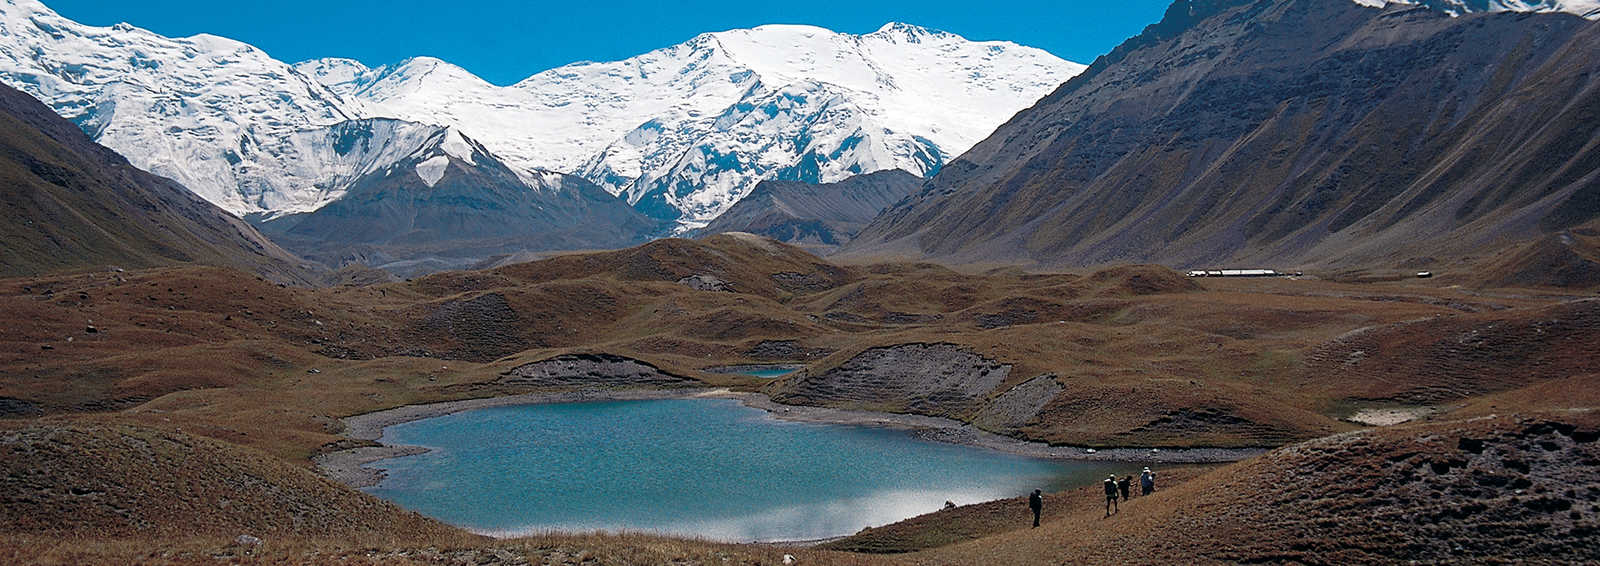 Peak Lenin from Achik Tash Valley, Pamirs,